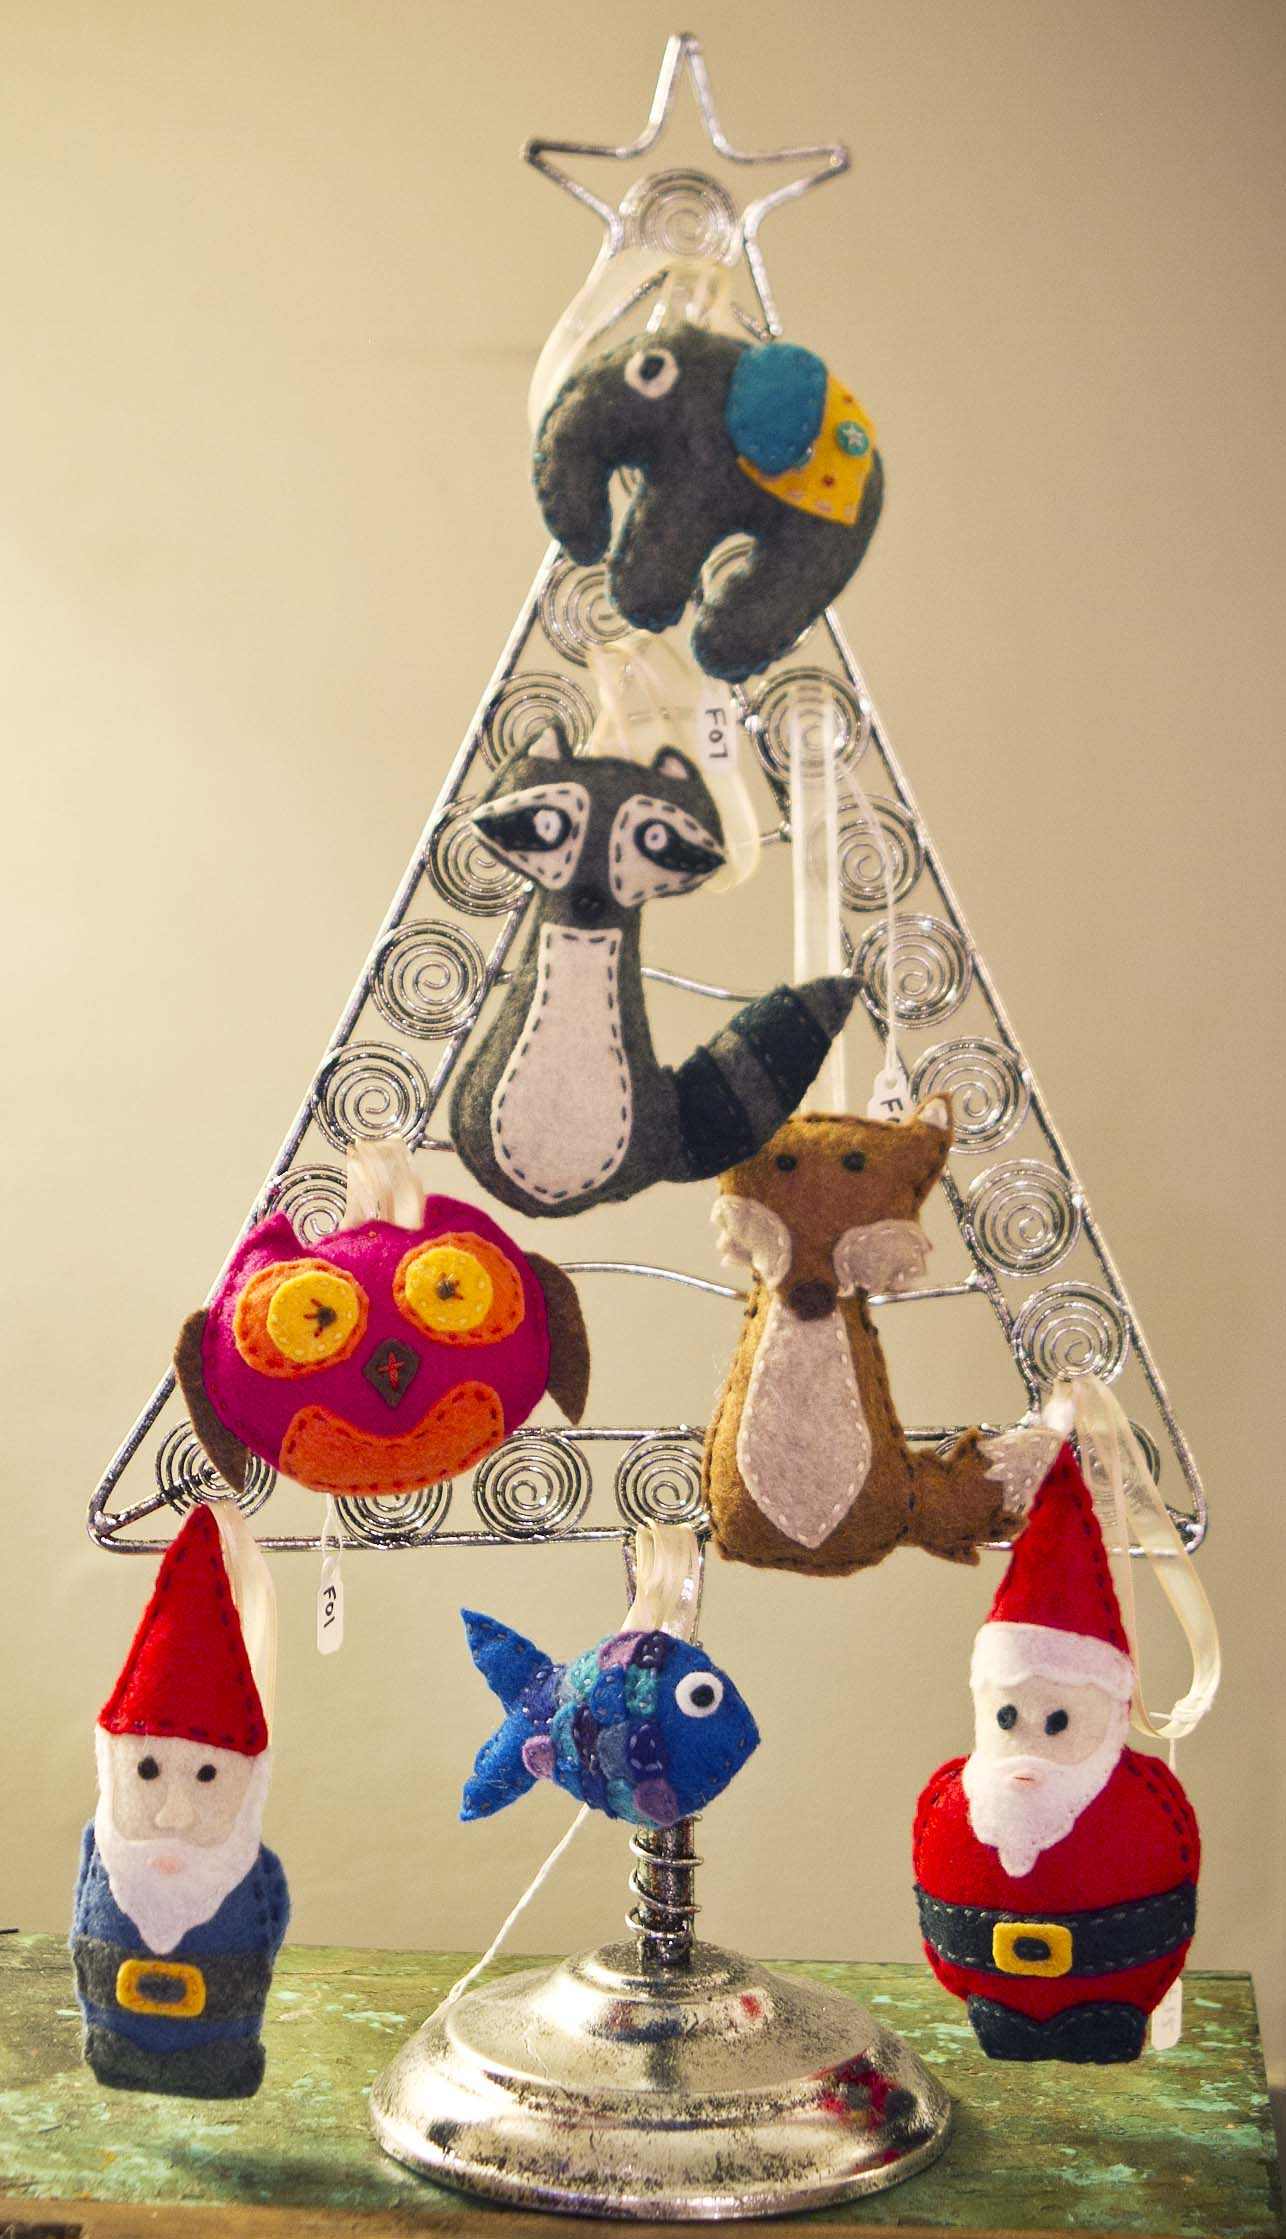 Glass cat ornaments - After Venturing Into Making Little Stuffed Creatures Like The Elephant Cat Toys In My Previous Post I Ve Gotten A Bit Hooked On Creating New Patterns